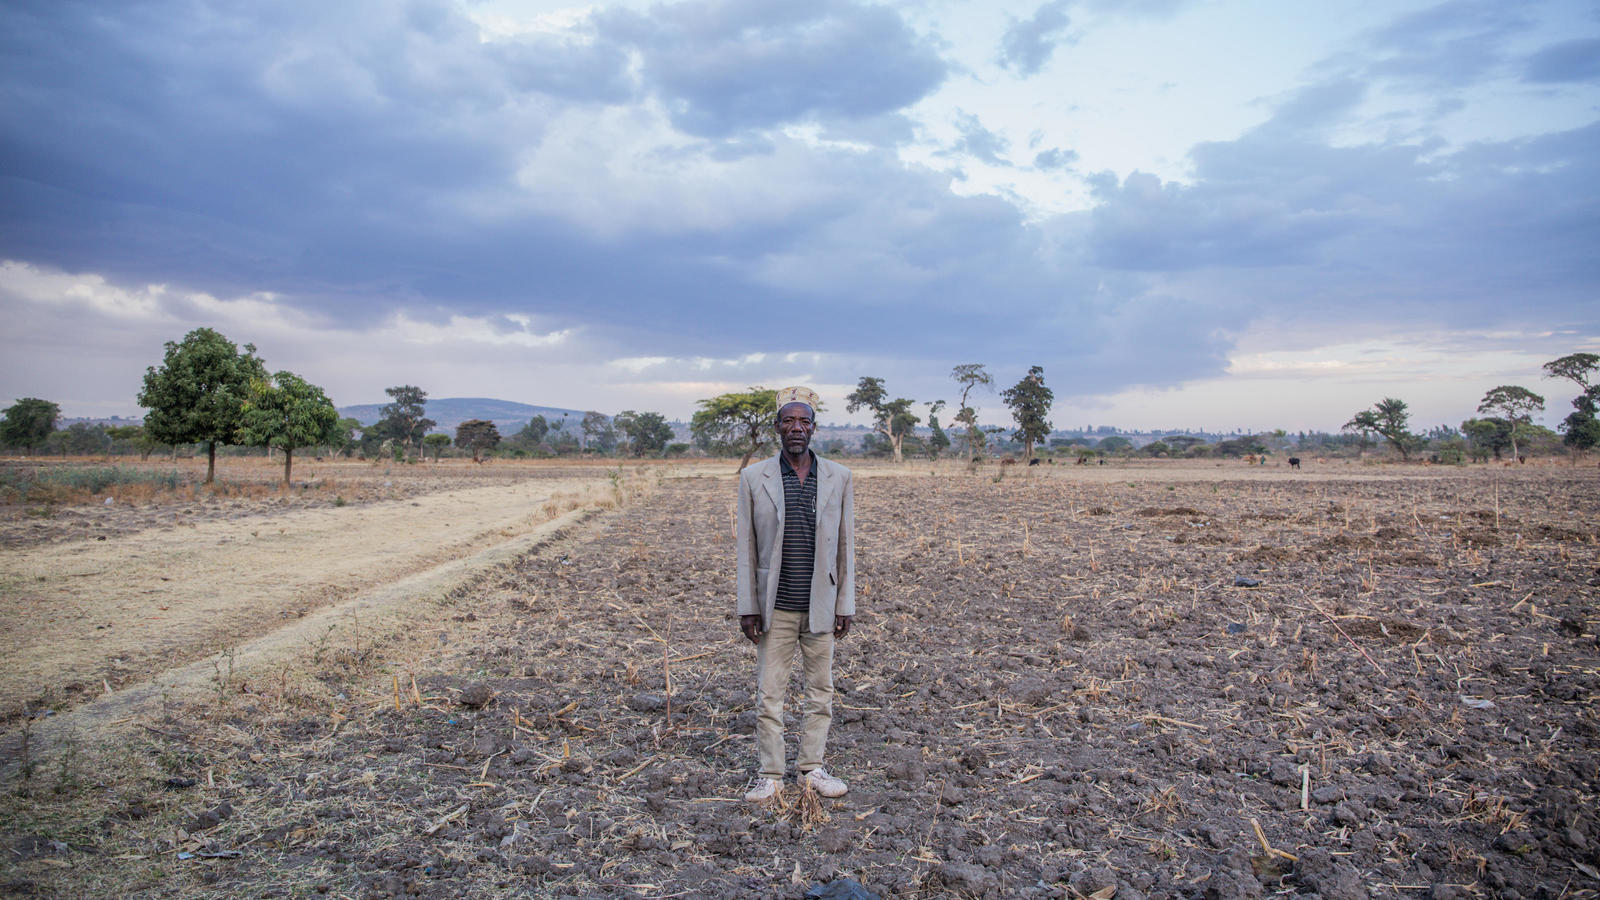 Gebre stands in a field on his farm, which he's struggling to get water to.